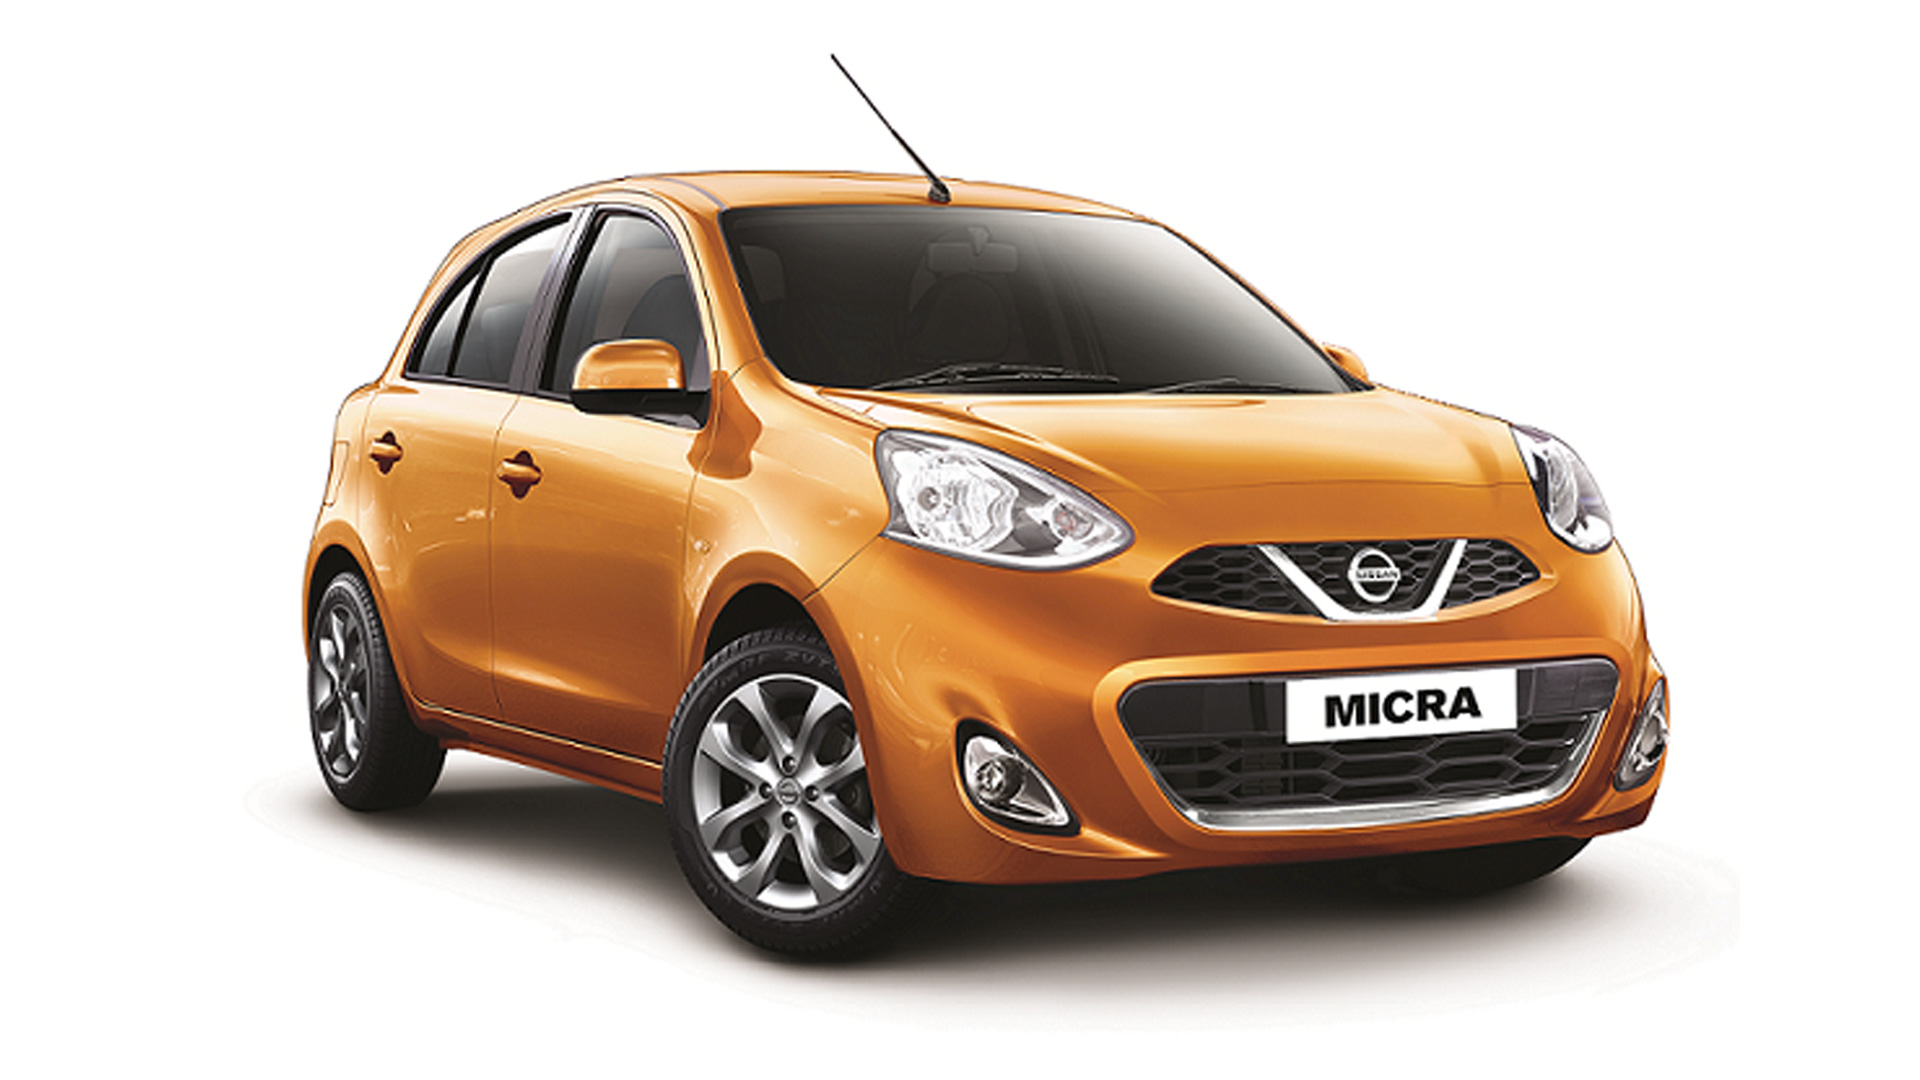 nissan micra 2015 xv cvt price mileage reviews specification gallery overdrive. Black Bedroom Furniture Sets. Home Design Ideas